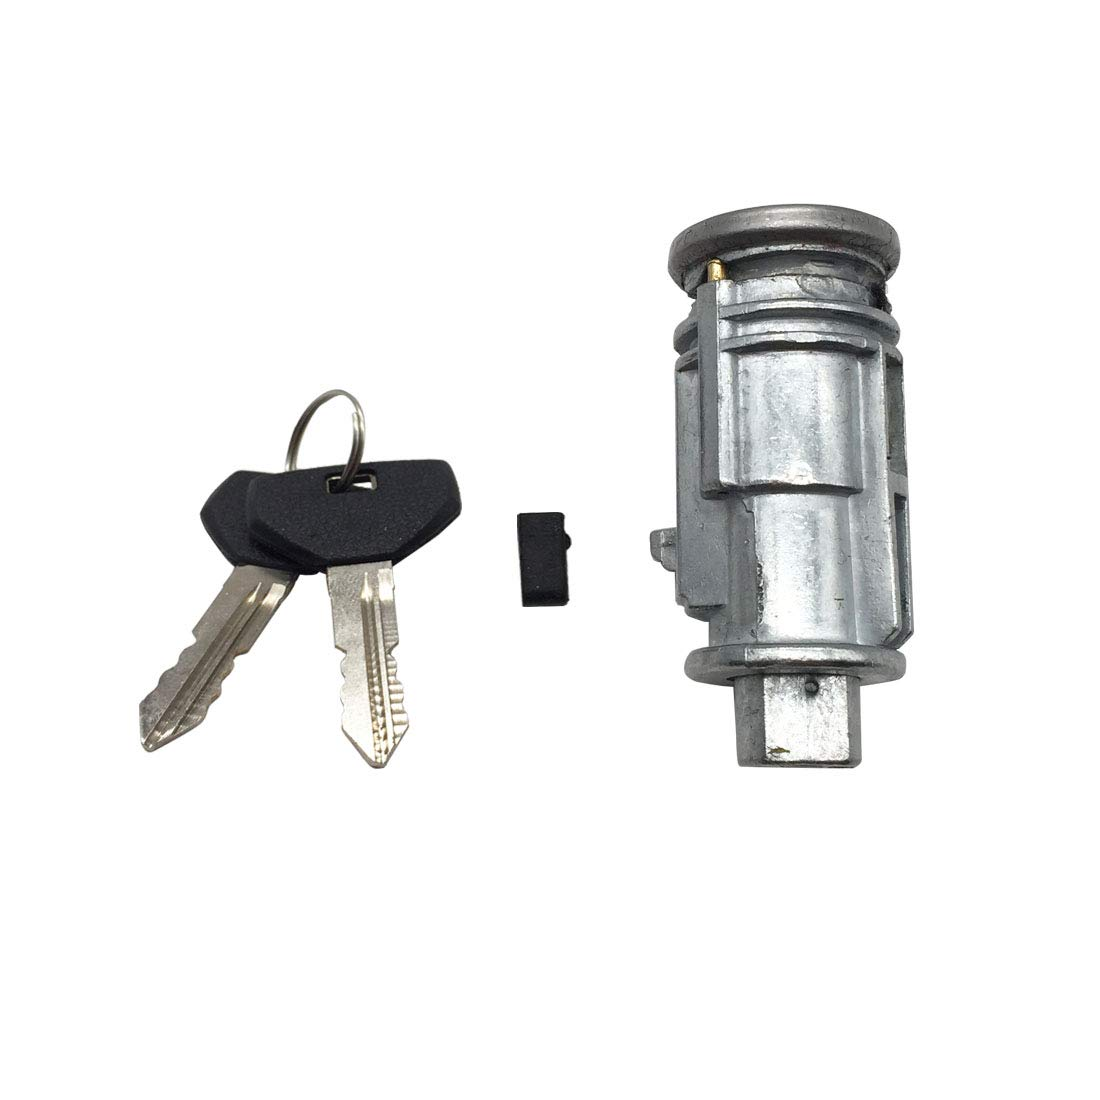 Ignition Lock Cylinder 5083915AB 5003843AB for Cherysler Dodge Plymouth